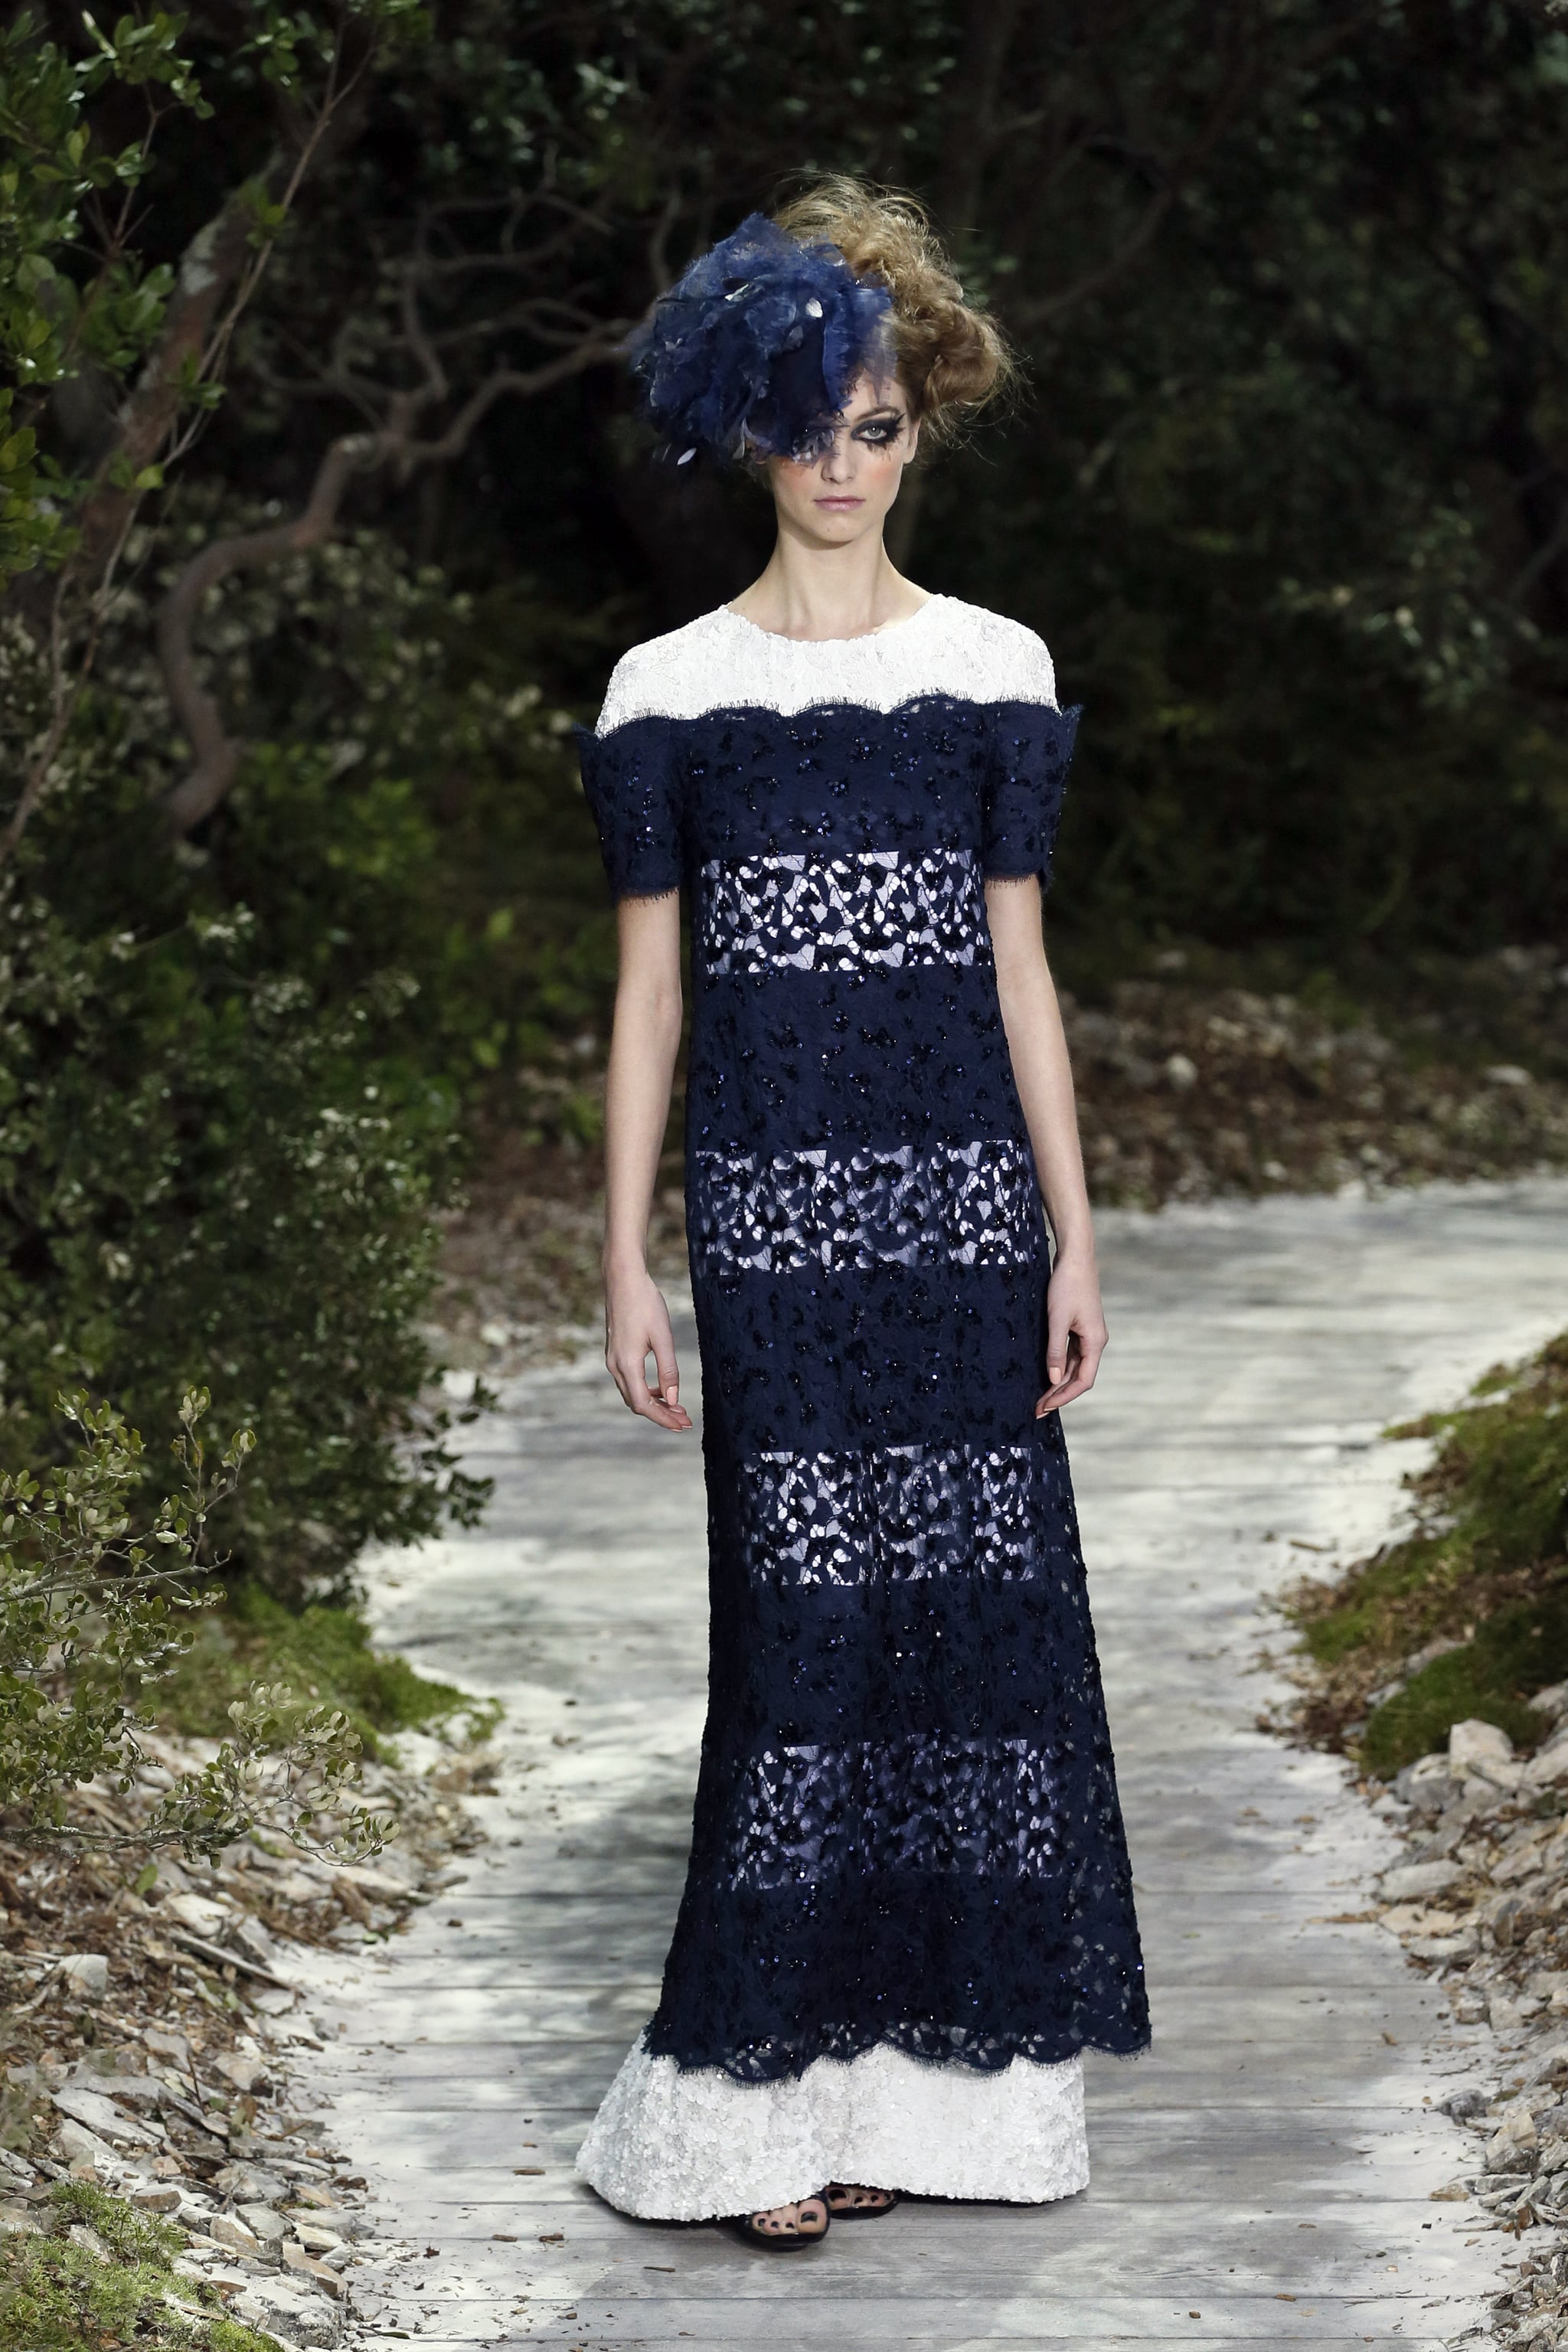 Lace at Chanel